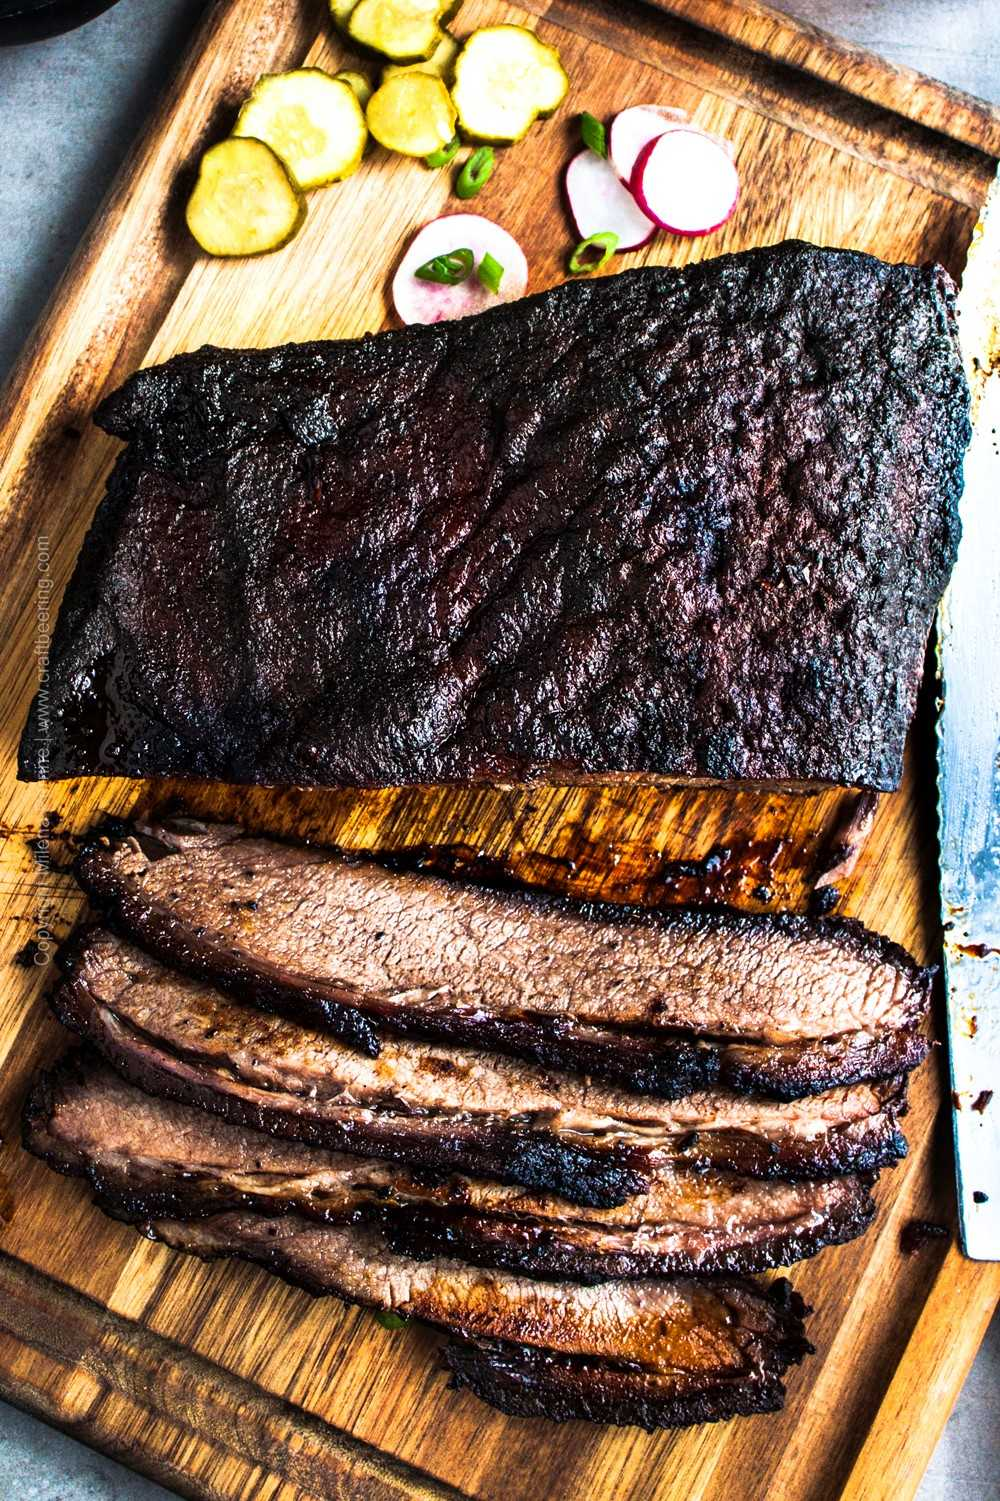 Braised beer brisket on cutting board